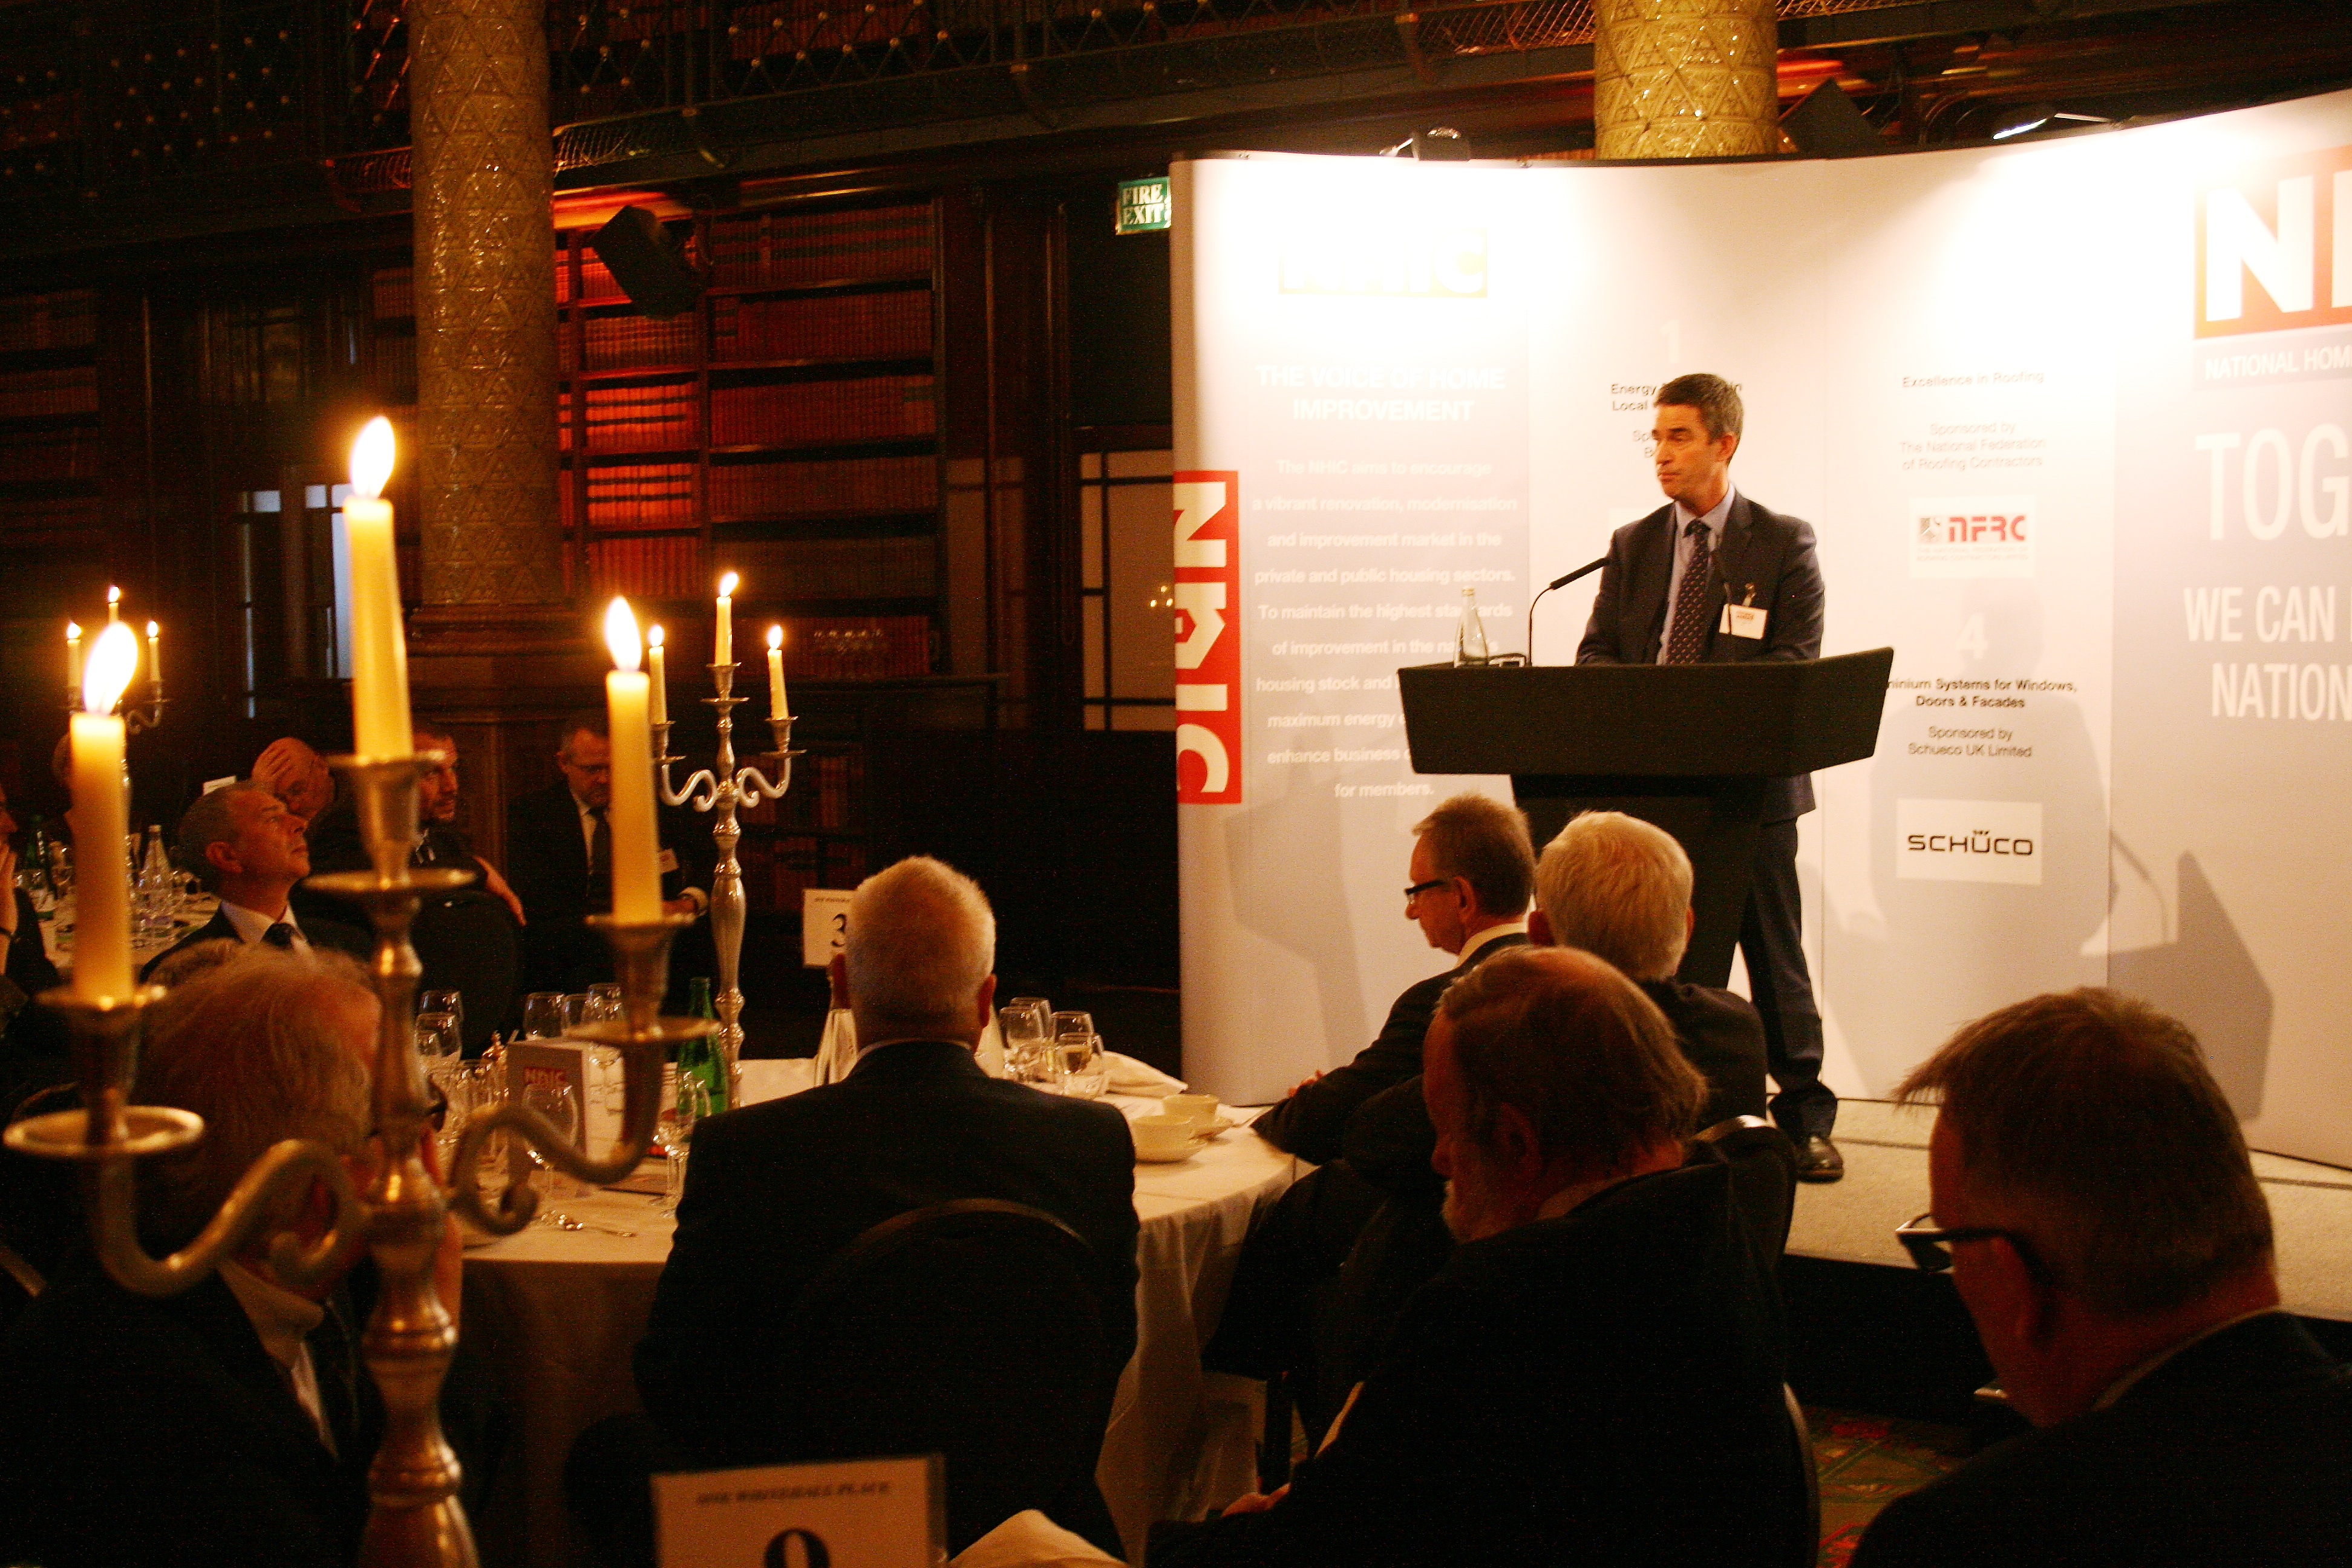 Guest Speaker - Peter Bonfield OBE, Chief Executive at BRE